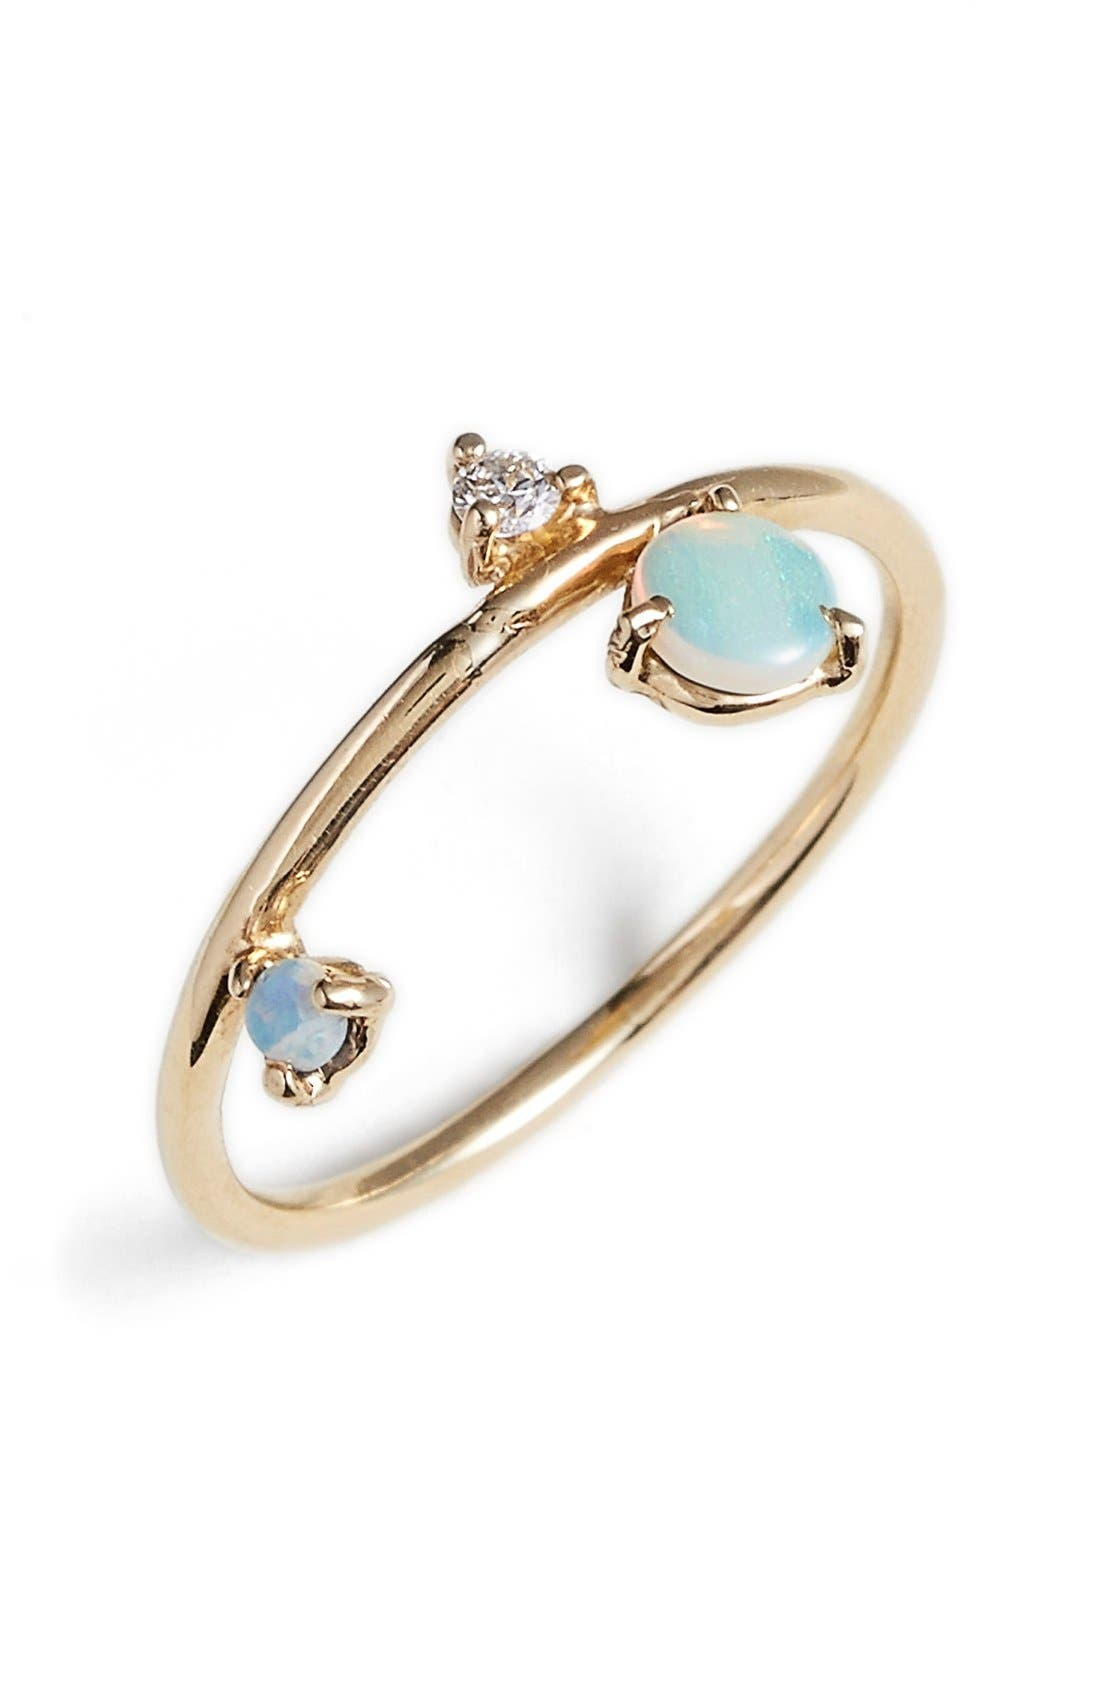 Counting Collection Three-Step Balloon Opal & Diamond Ring,                         Main,                         color, YELLOW GOLD